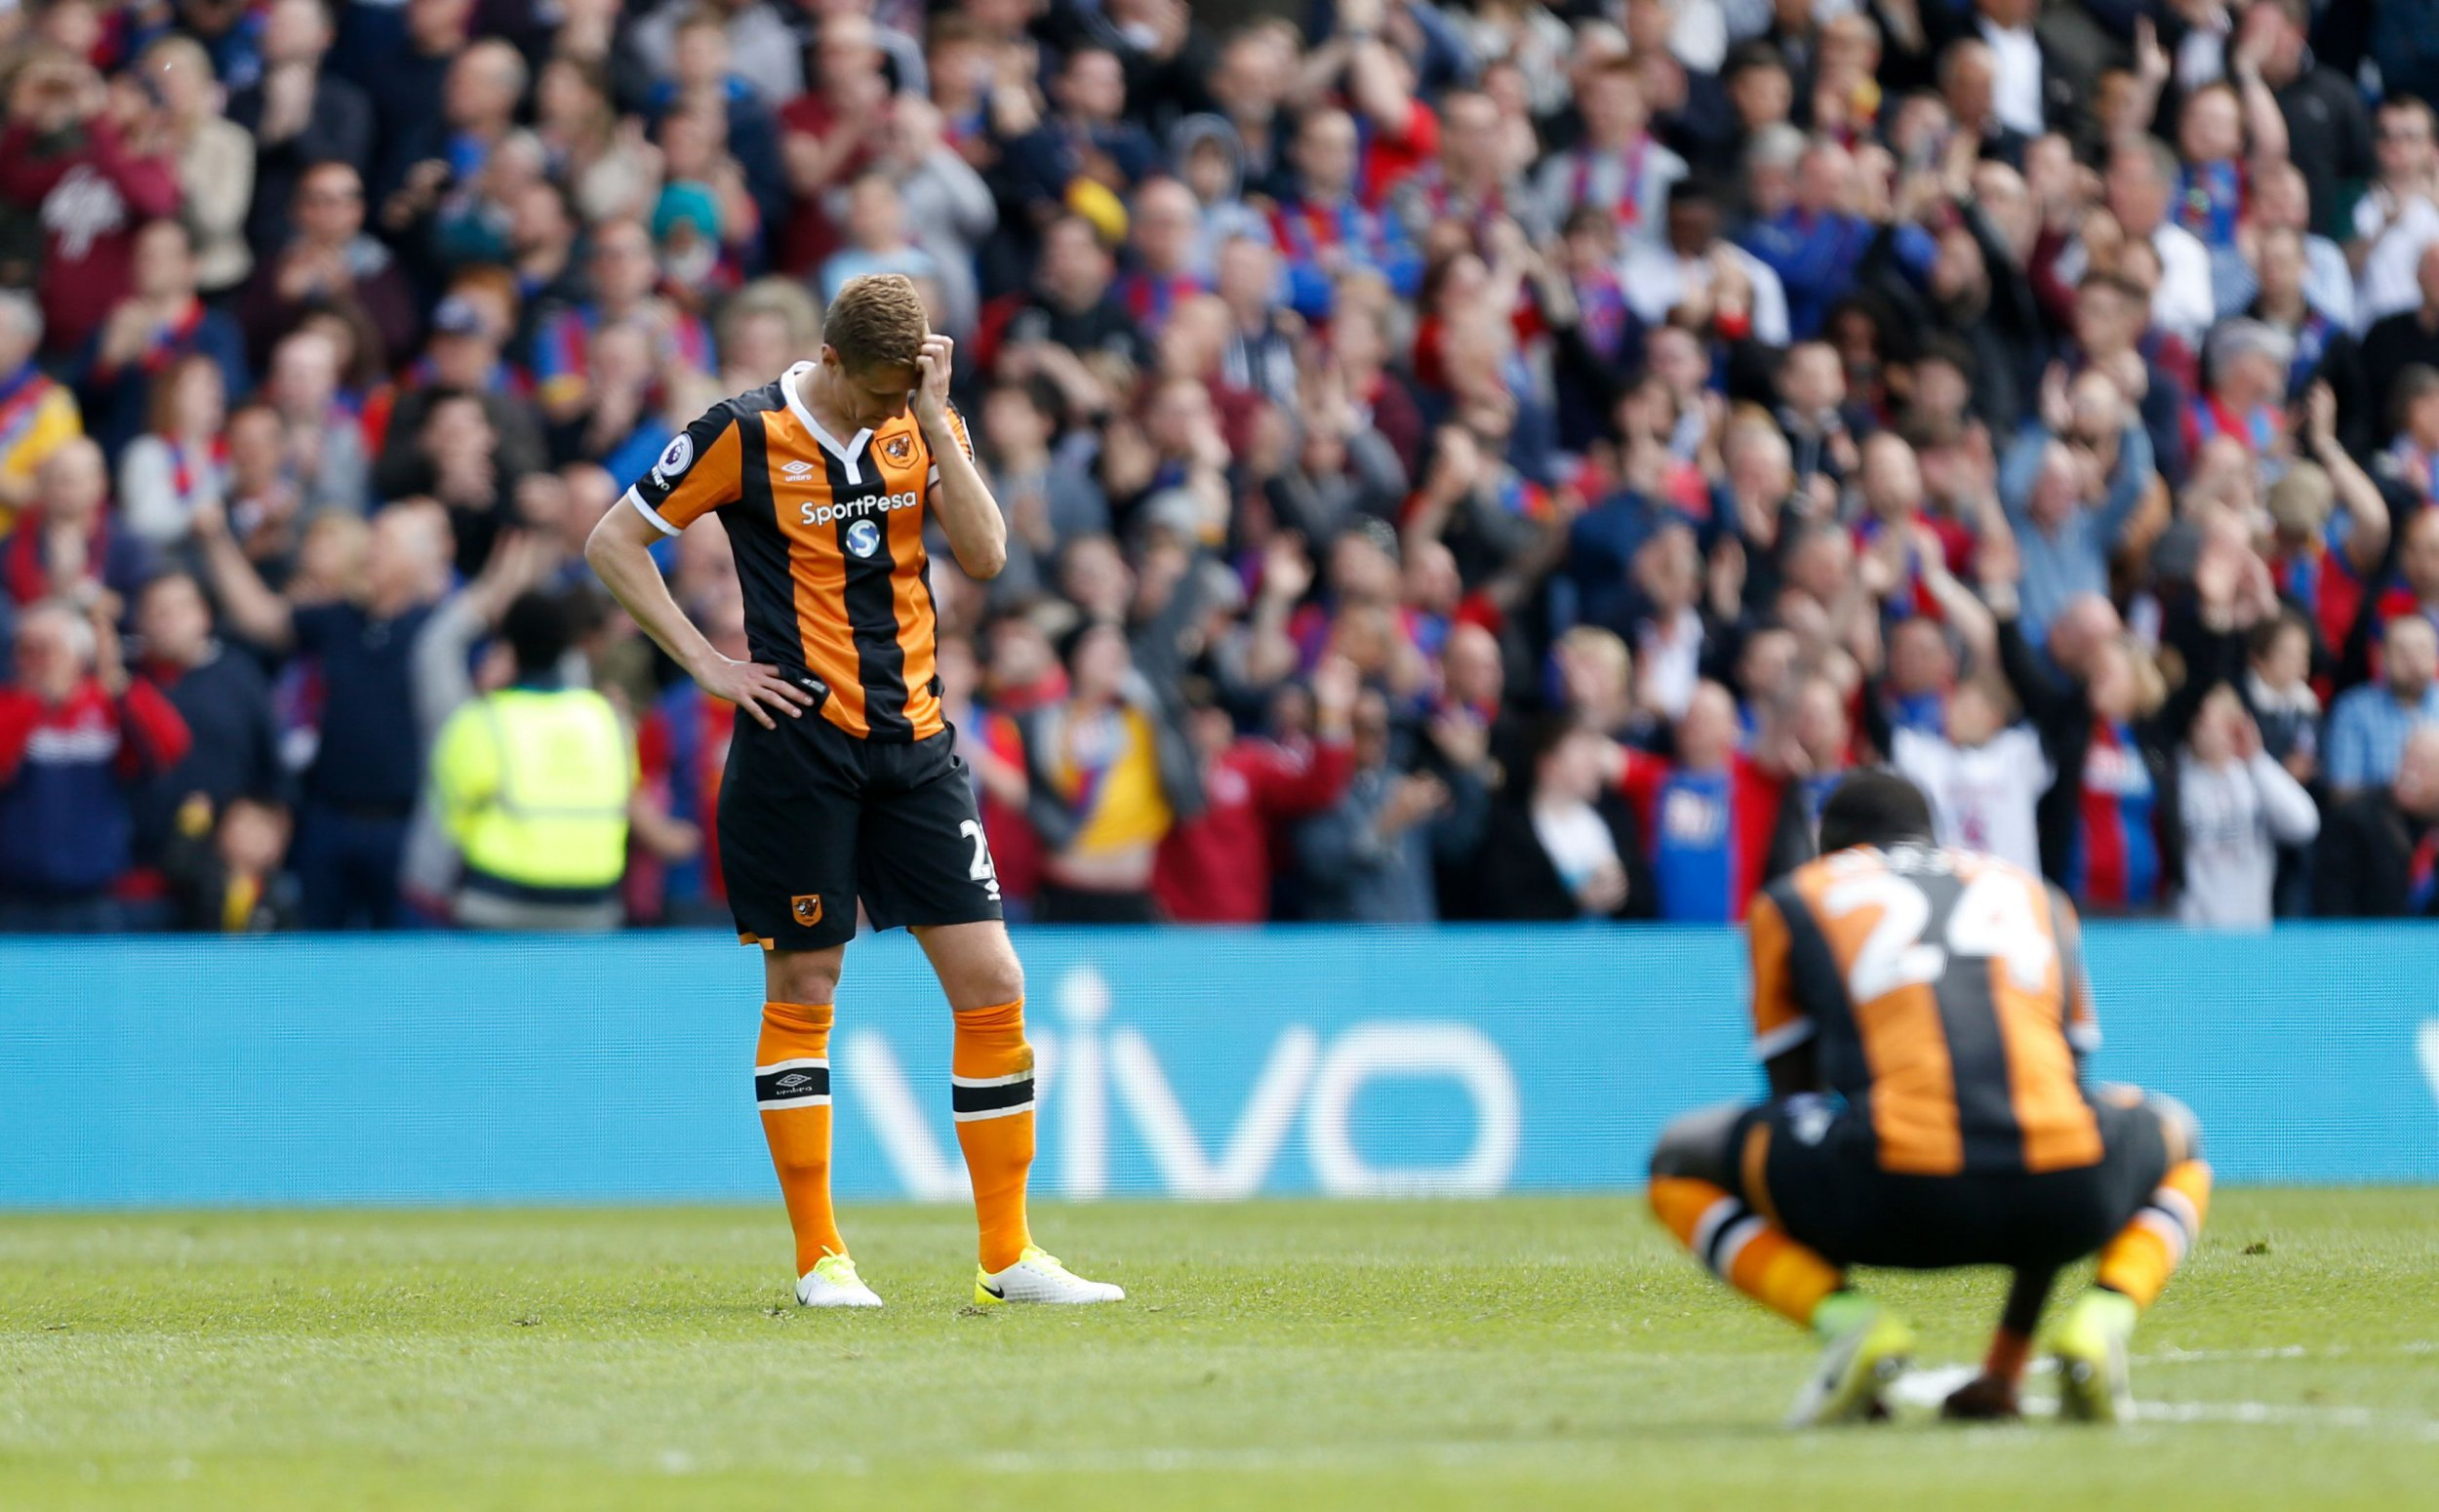 Hull City relegated after horrendous defending in 4-0 defeat to Crystal Palace